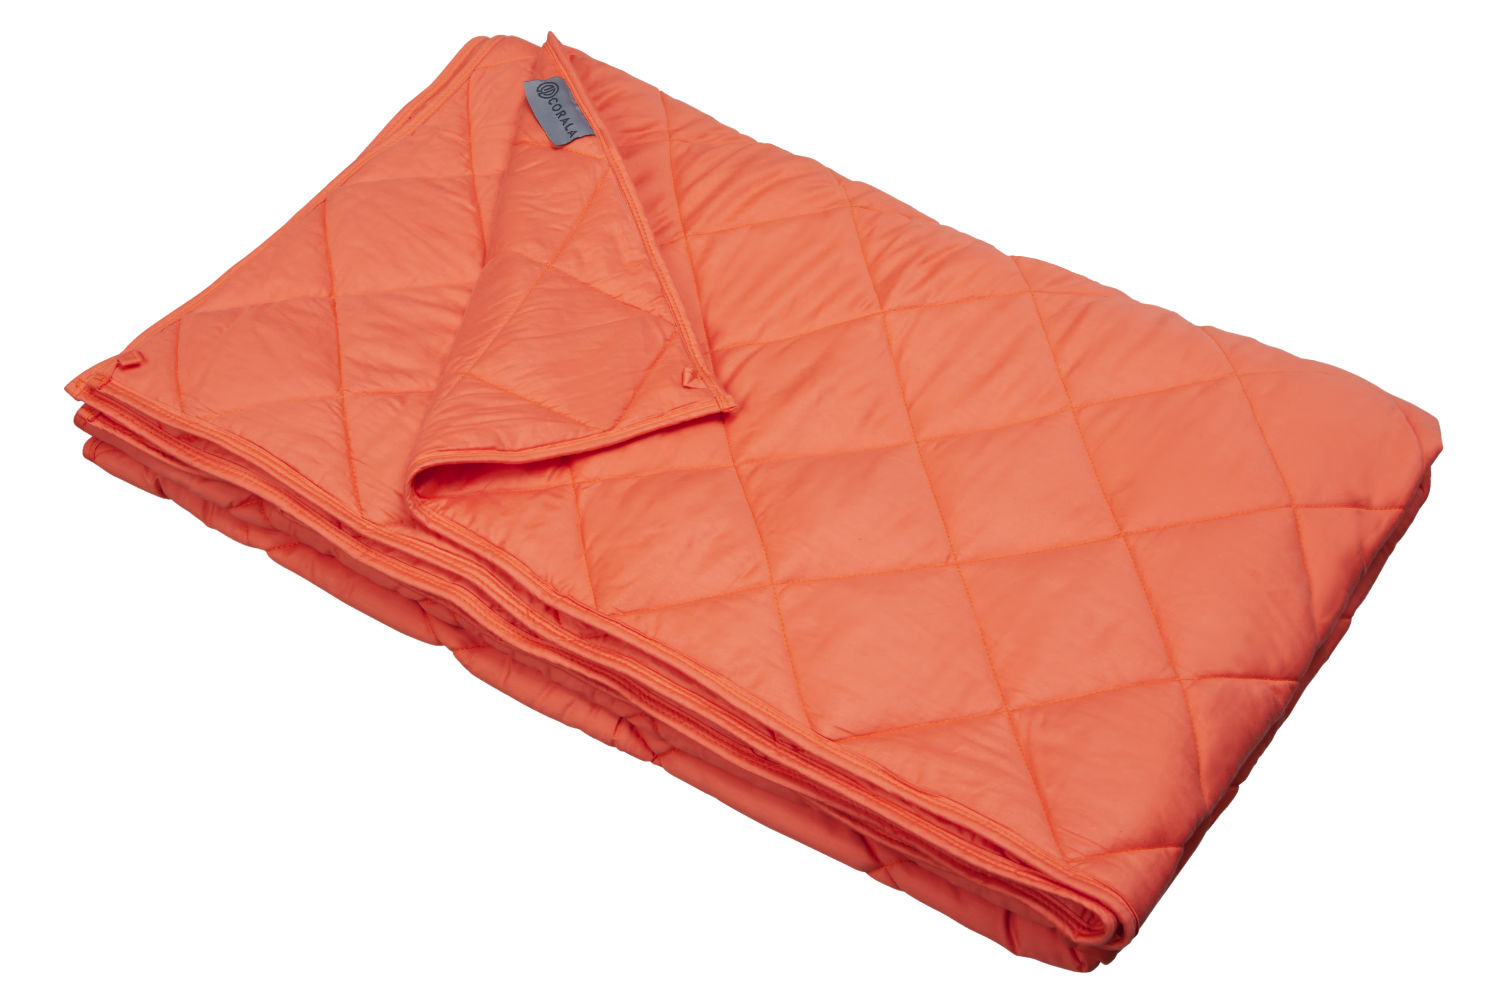 Corala weighted blanket